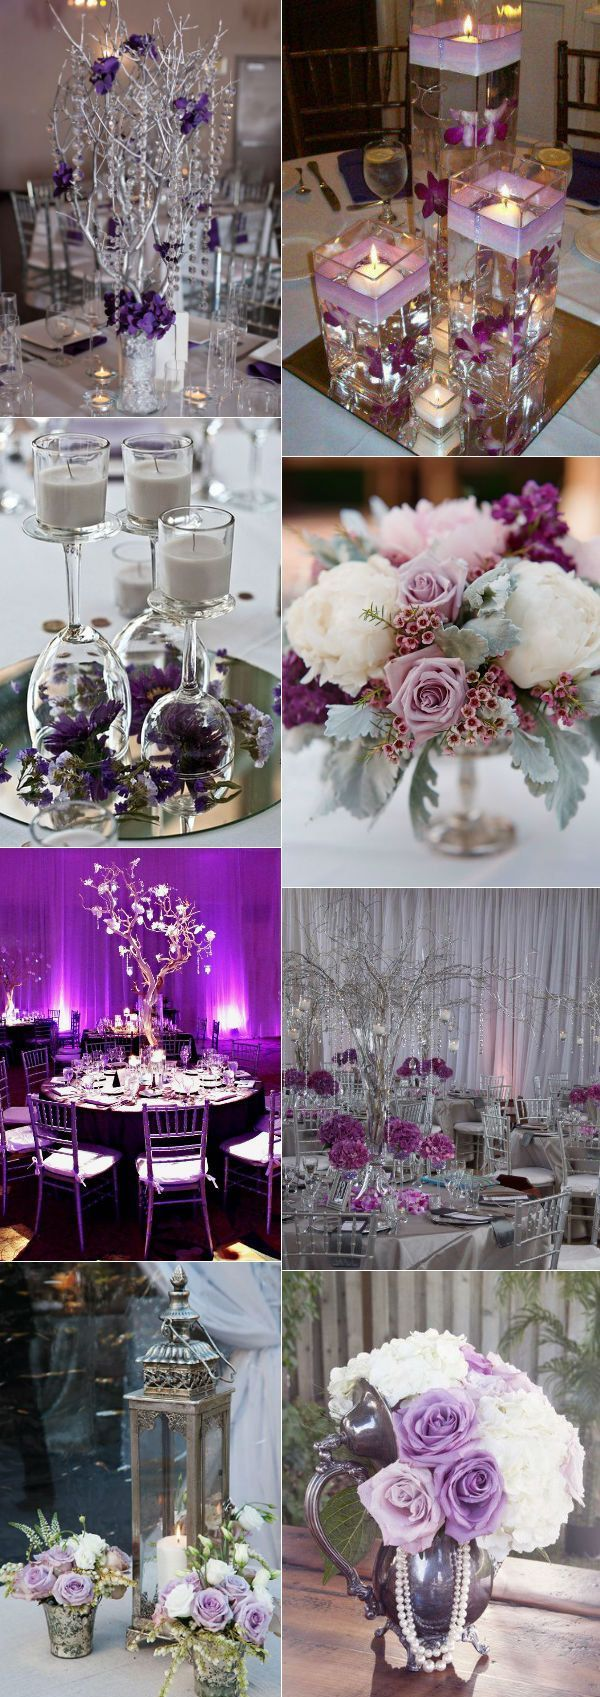 royal blue and silver wedding centerpieces%0A Fish bowl wedding centrepiece for purple themed weddings  Purple  illuminated beads  cadburys purple roses and Ivory butterfly  Available to  hire f u